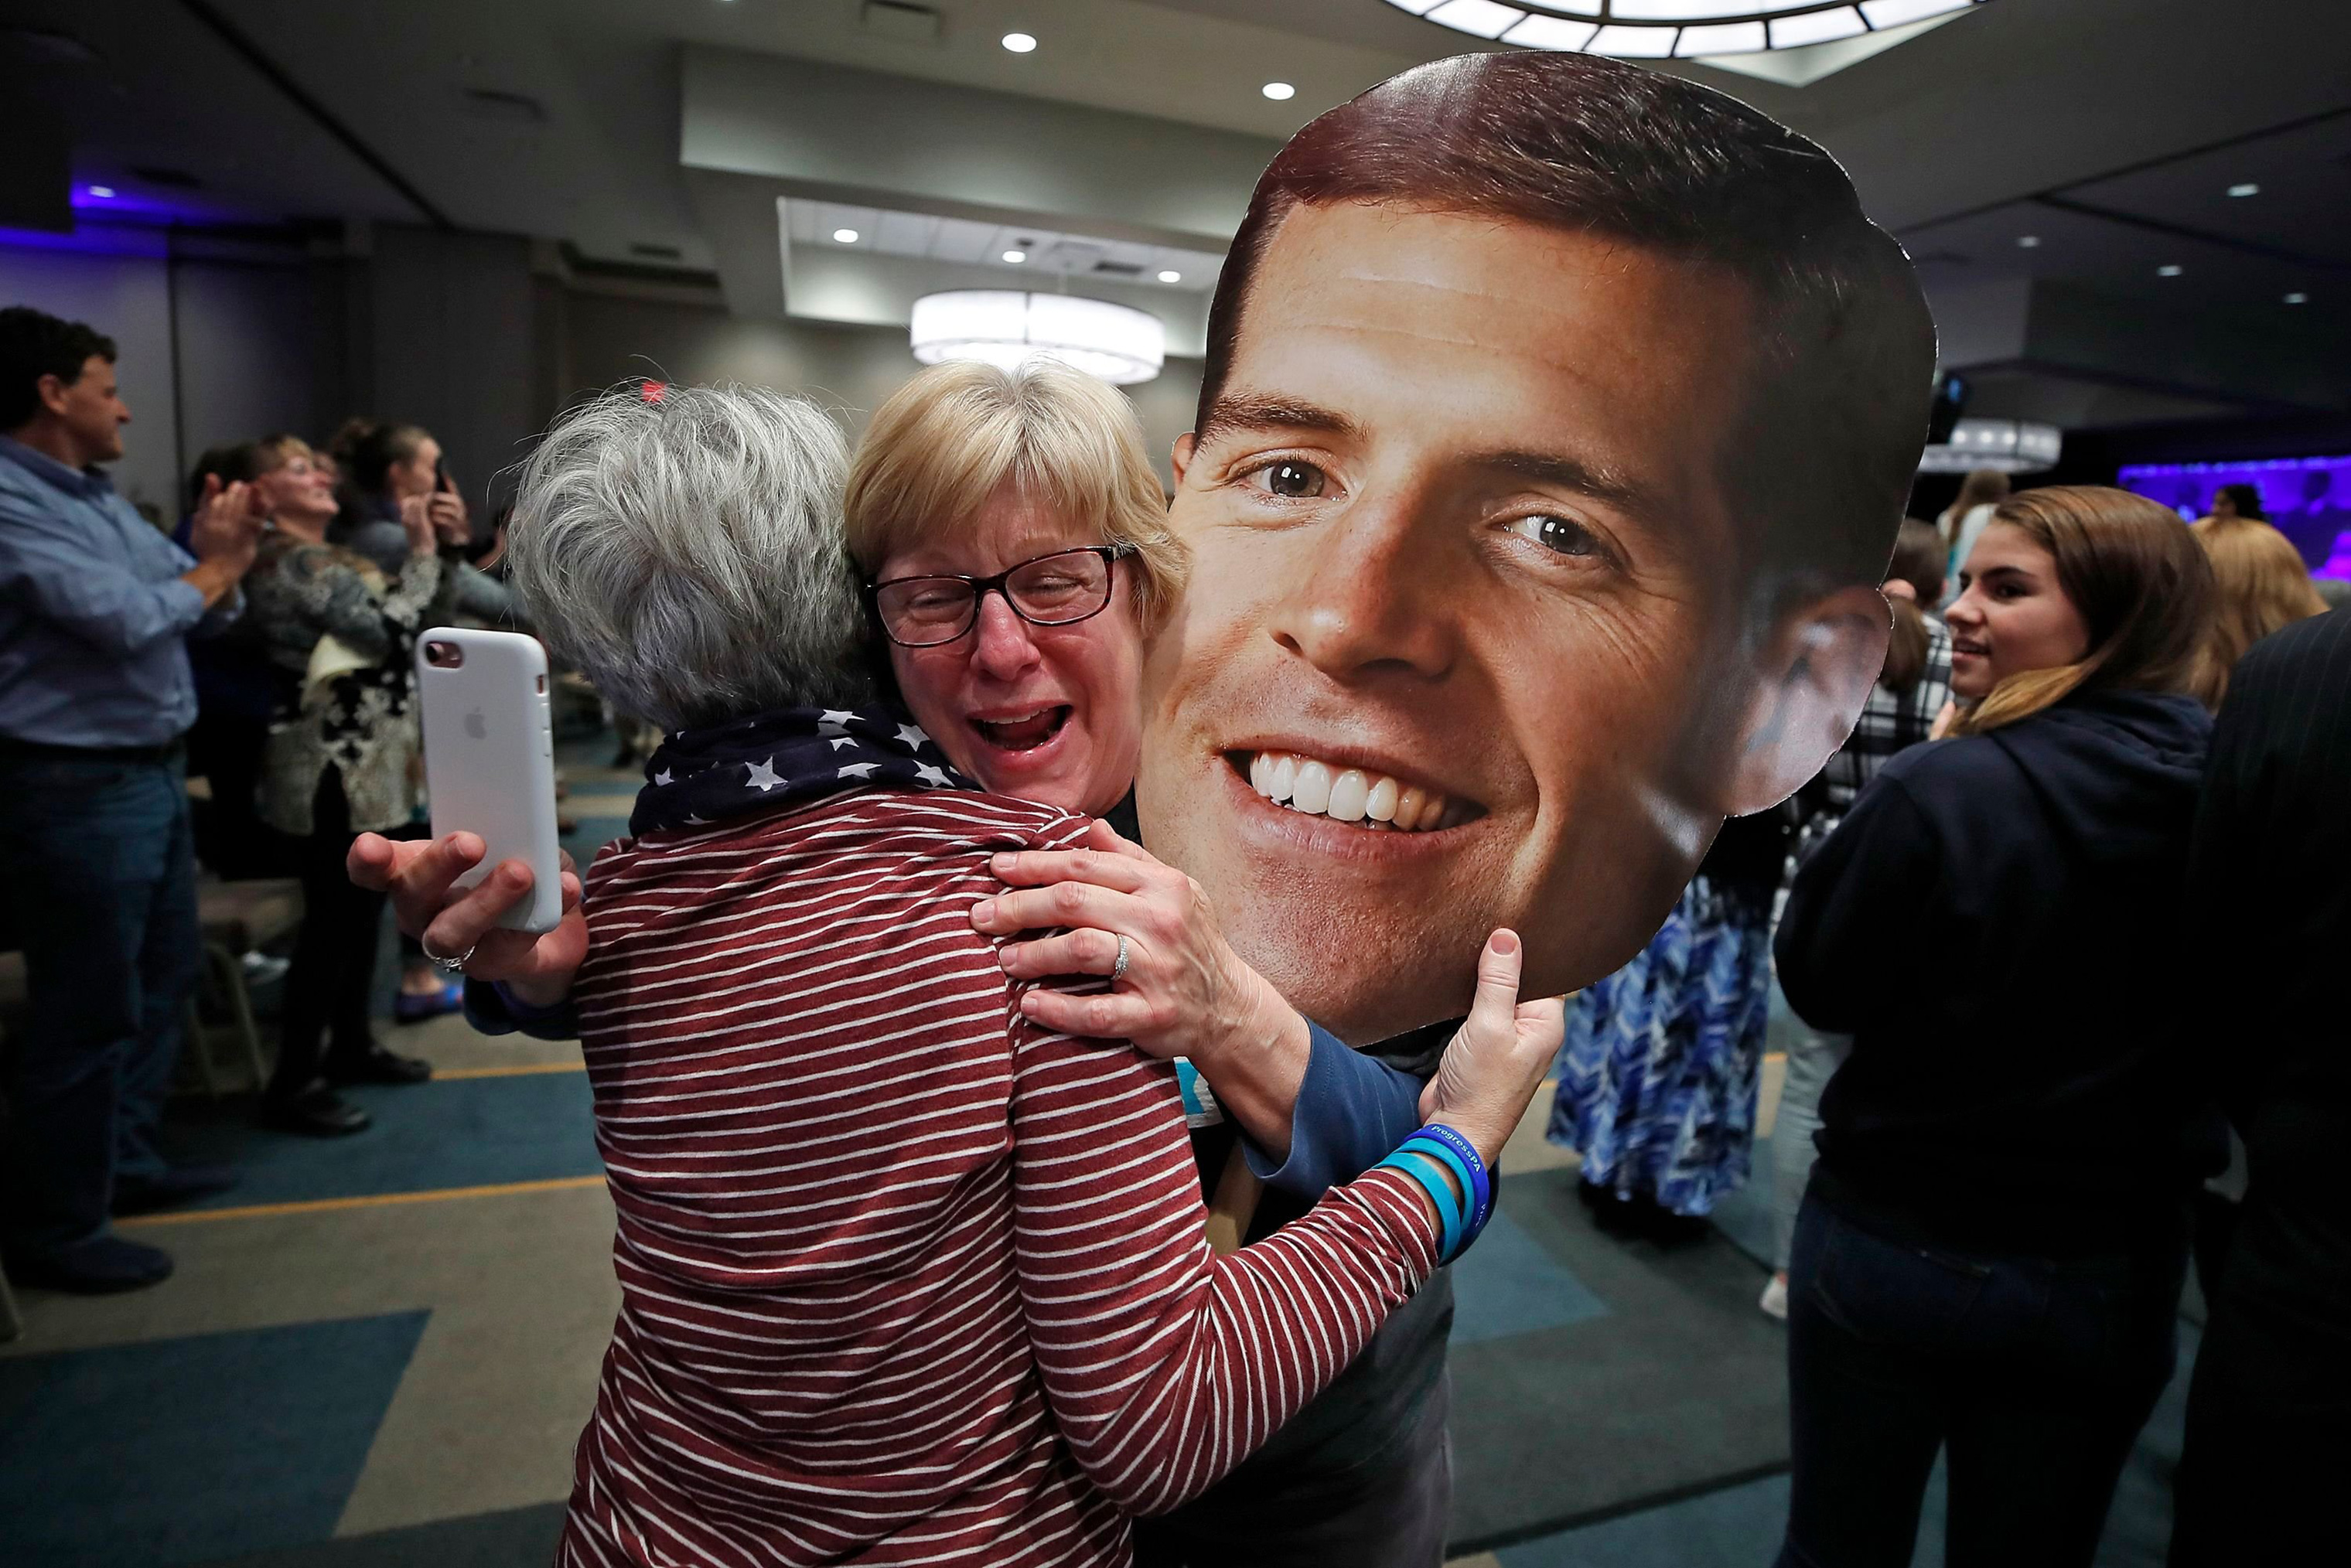 Supporters of Rep. Conor Lamb, Joanie Foran, left, and Linda Bishop, begin to celebrate after hearing CNN projected Lamb the winner in Pennsylvania's 17th Congressional District, at his election night party in Cranberry, Pa.